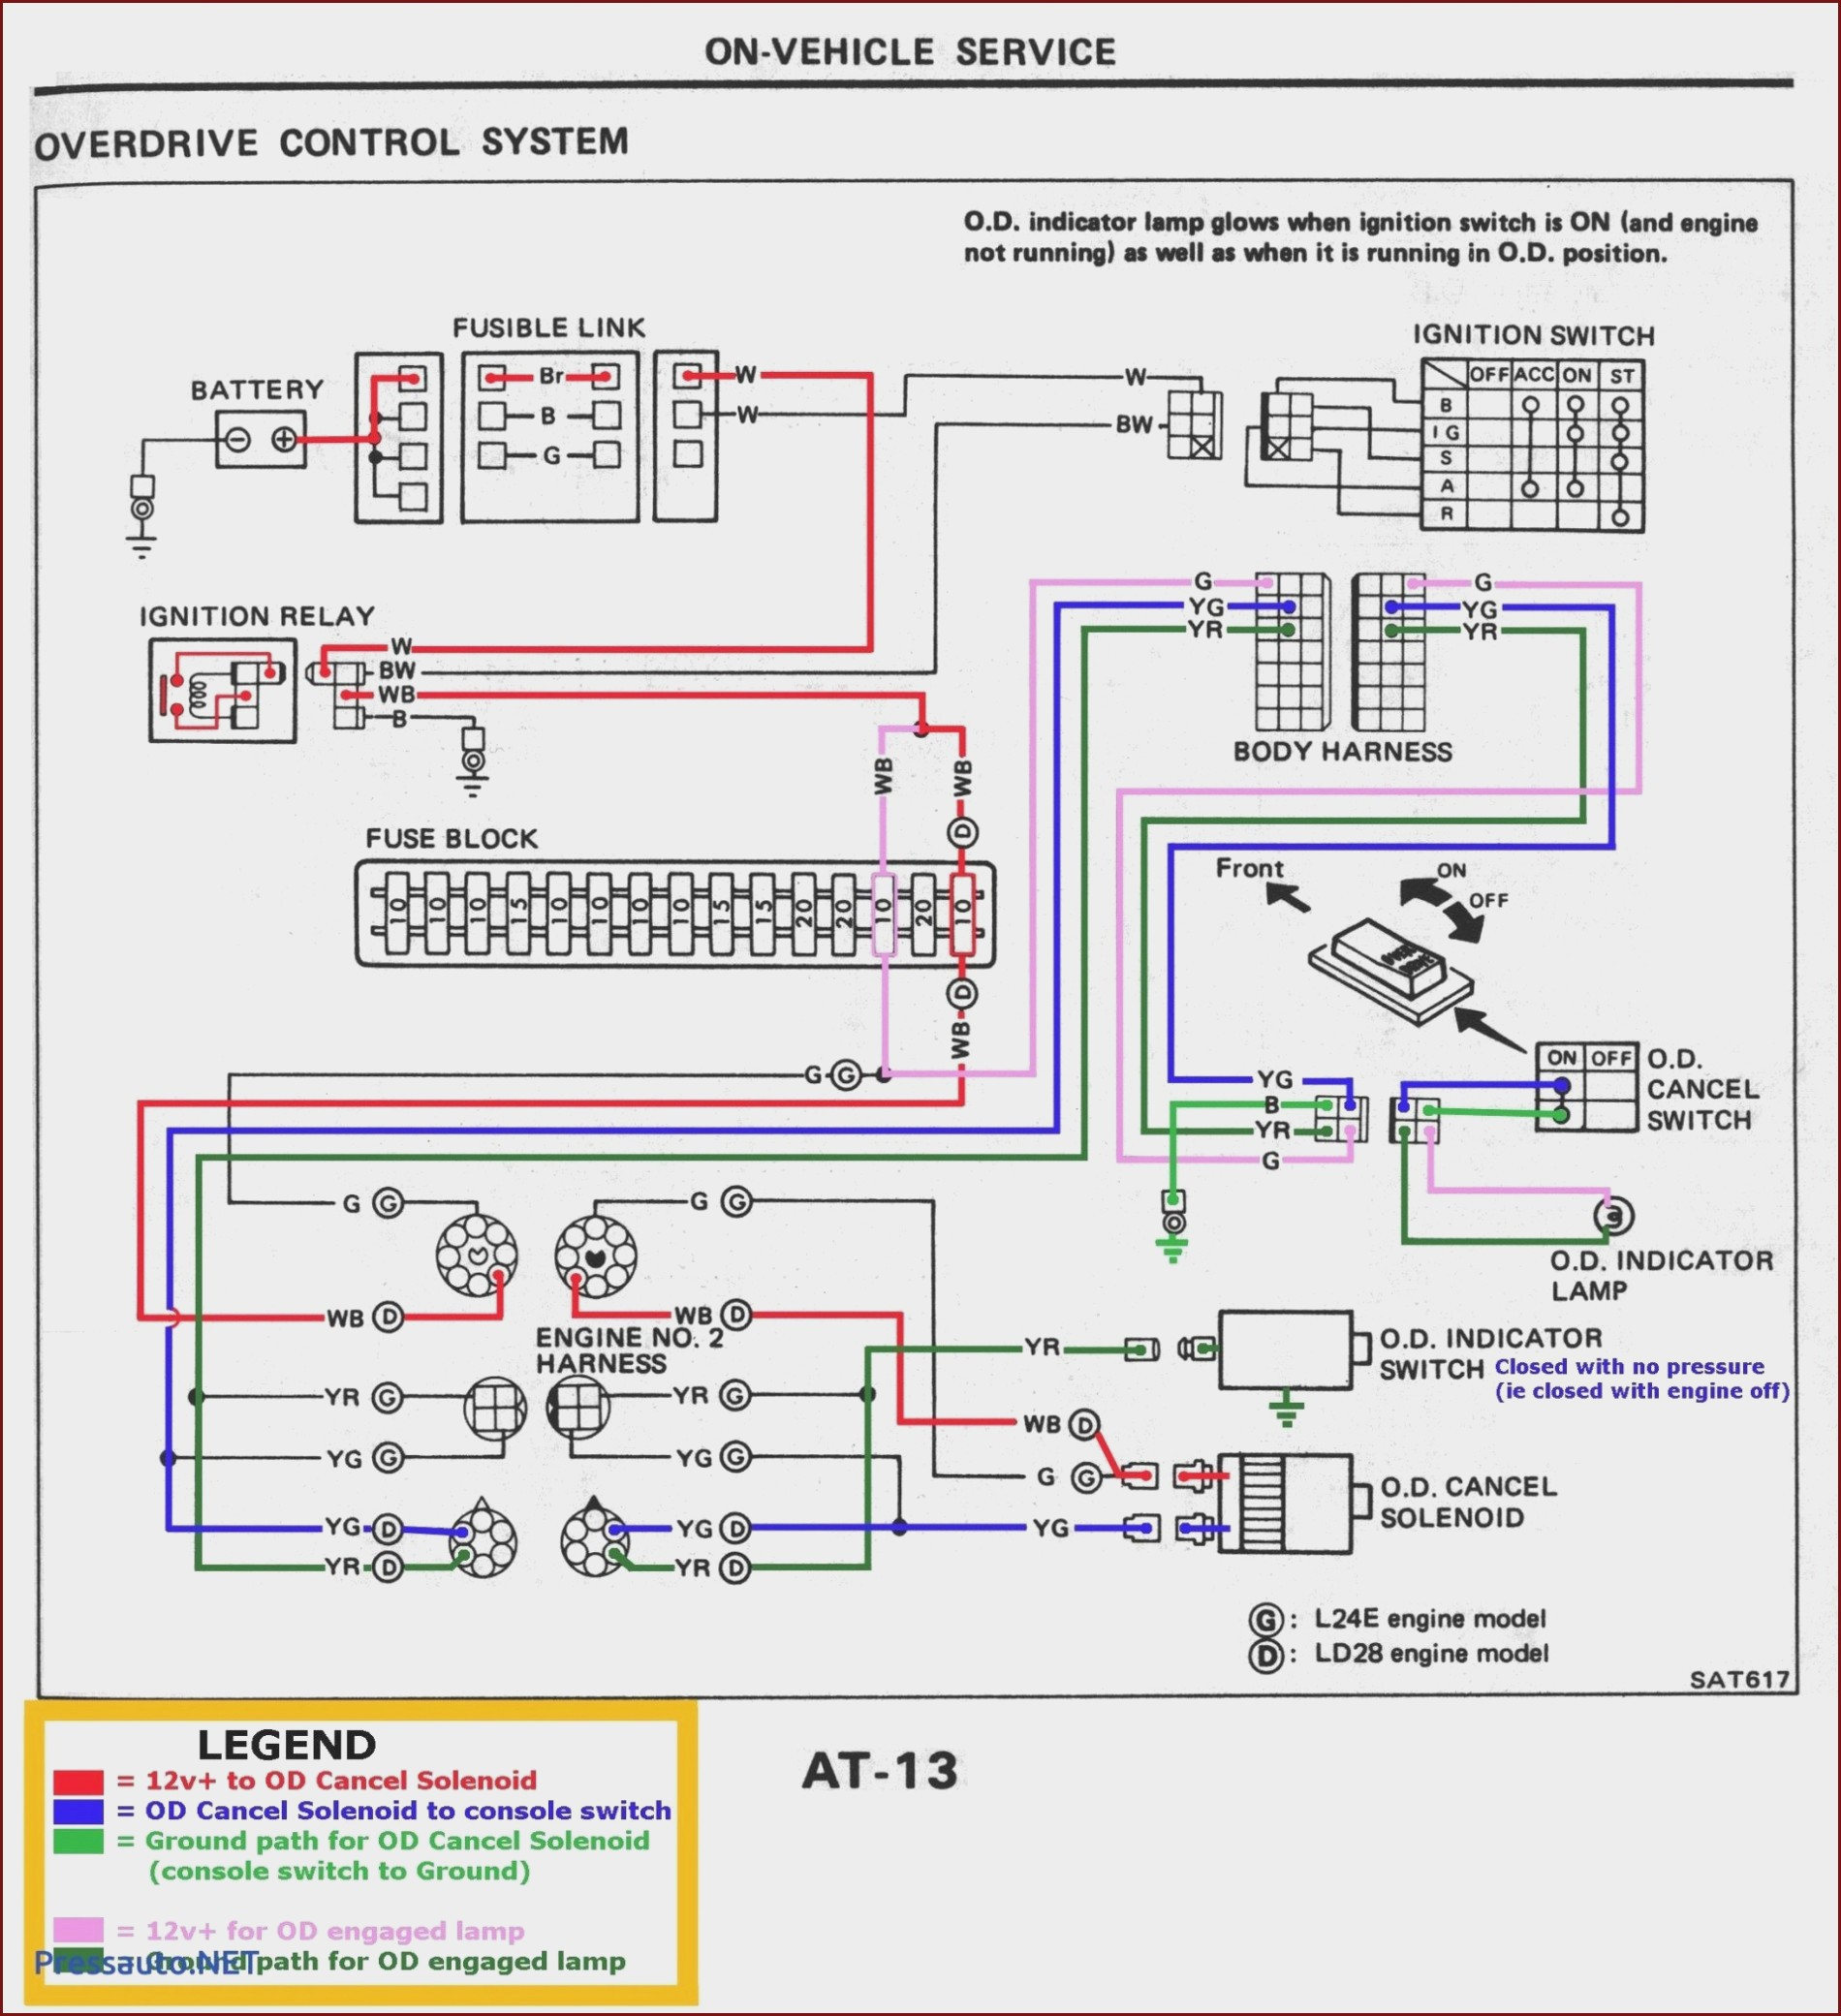 Genie Garage Door Sensor Wiring Diagram Omc E250 Fpxsif Wiring Diagram Wiring Diagram Options Of Genie Garage Door Sensor Wiring Diagram Garage Door Opener Furthermore Genie Garage Door Opener